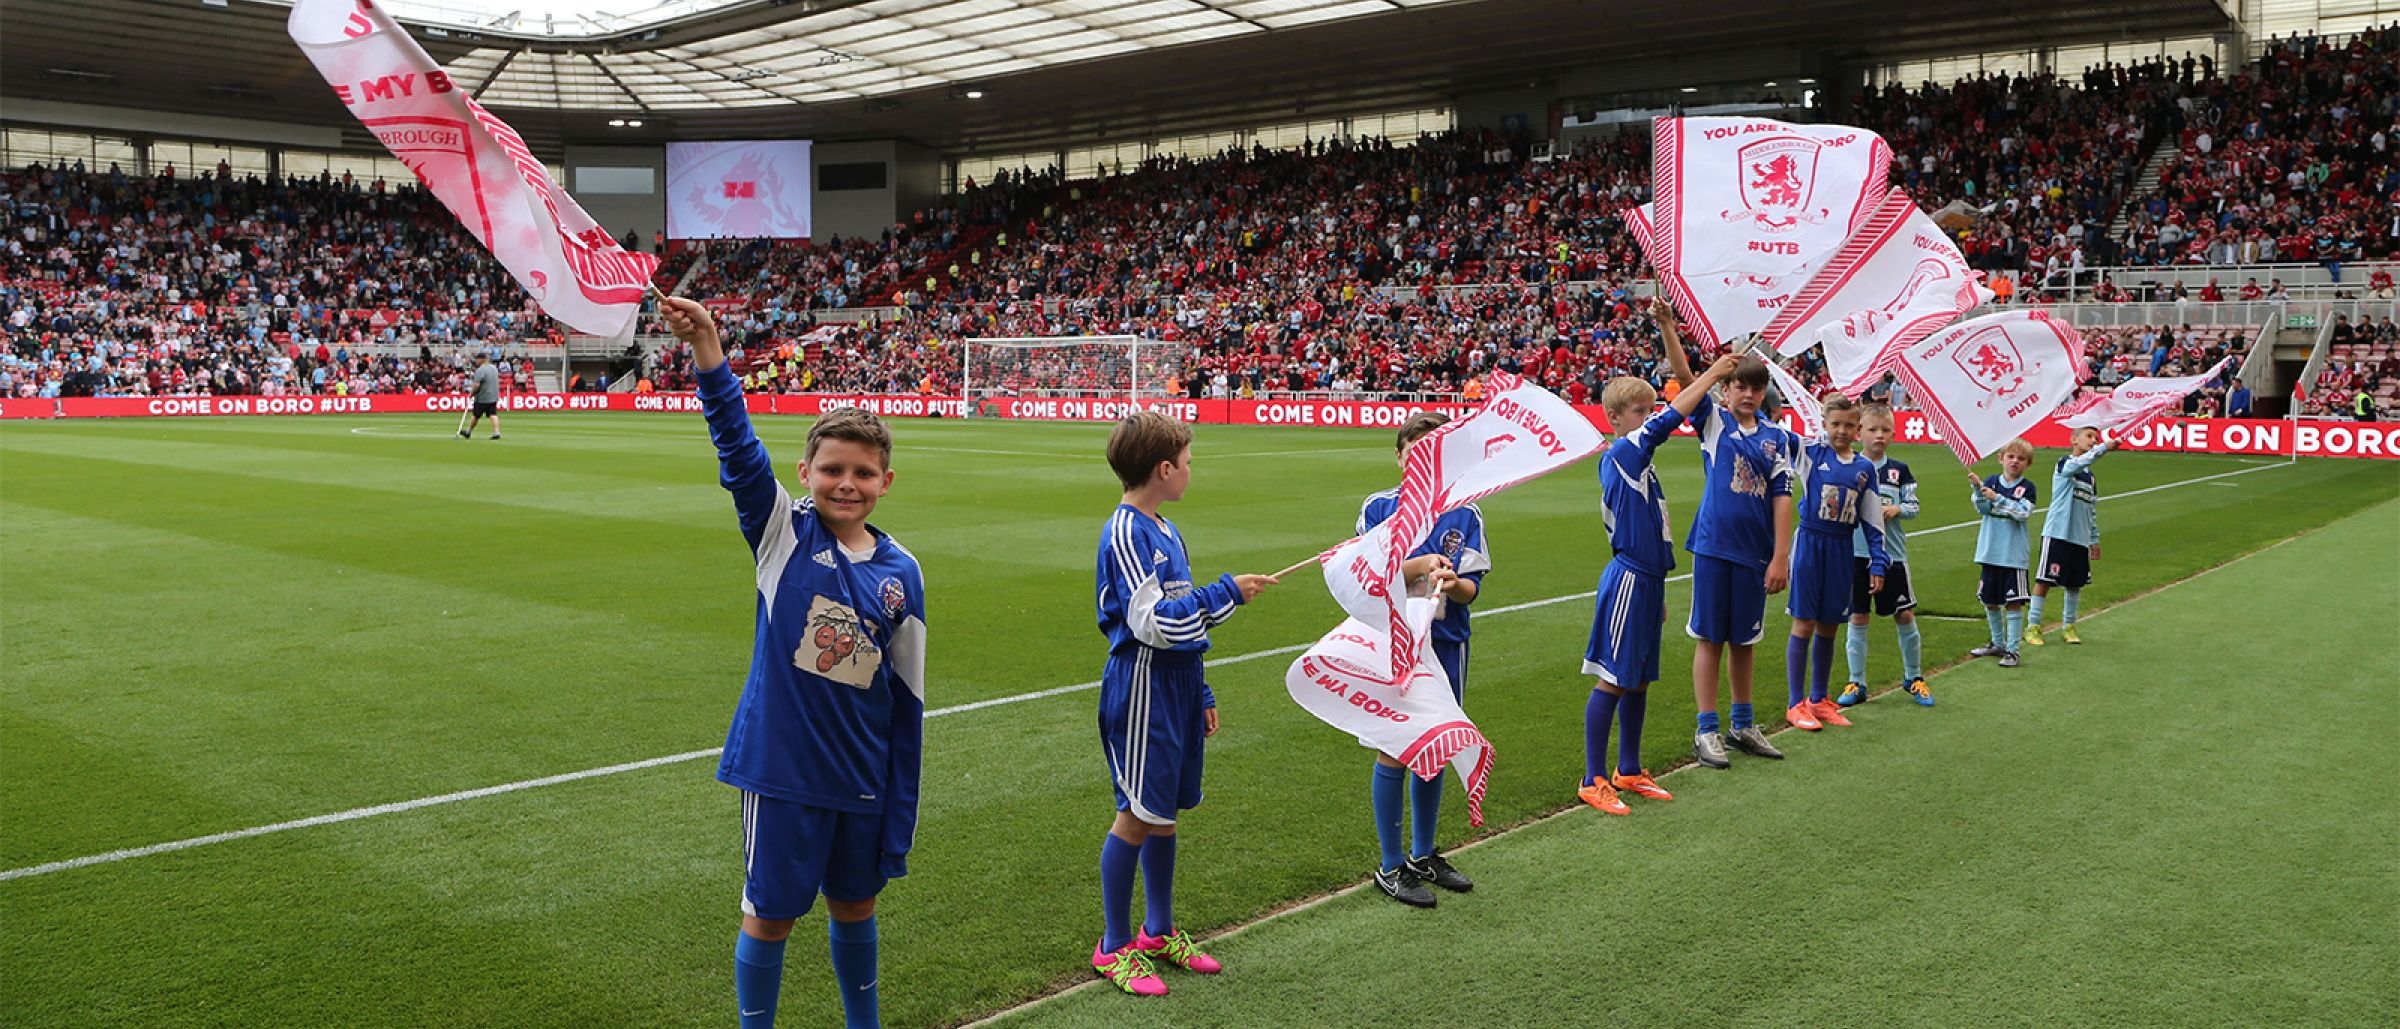 Young fans waves flags pitchside as part of the Matchday Squad scheme